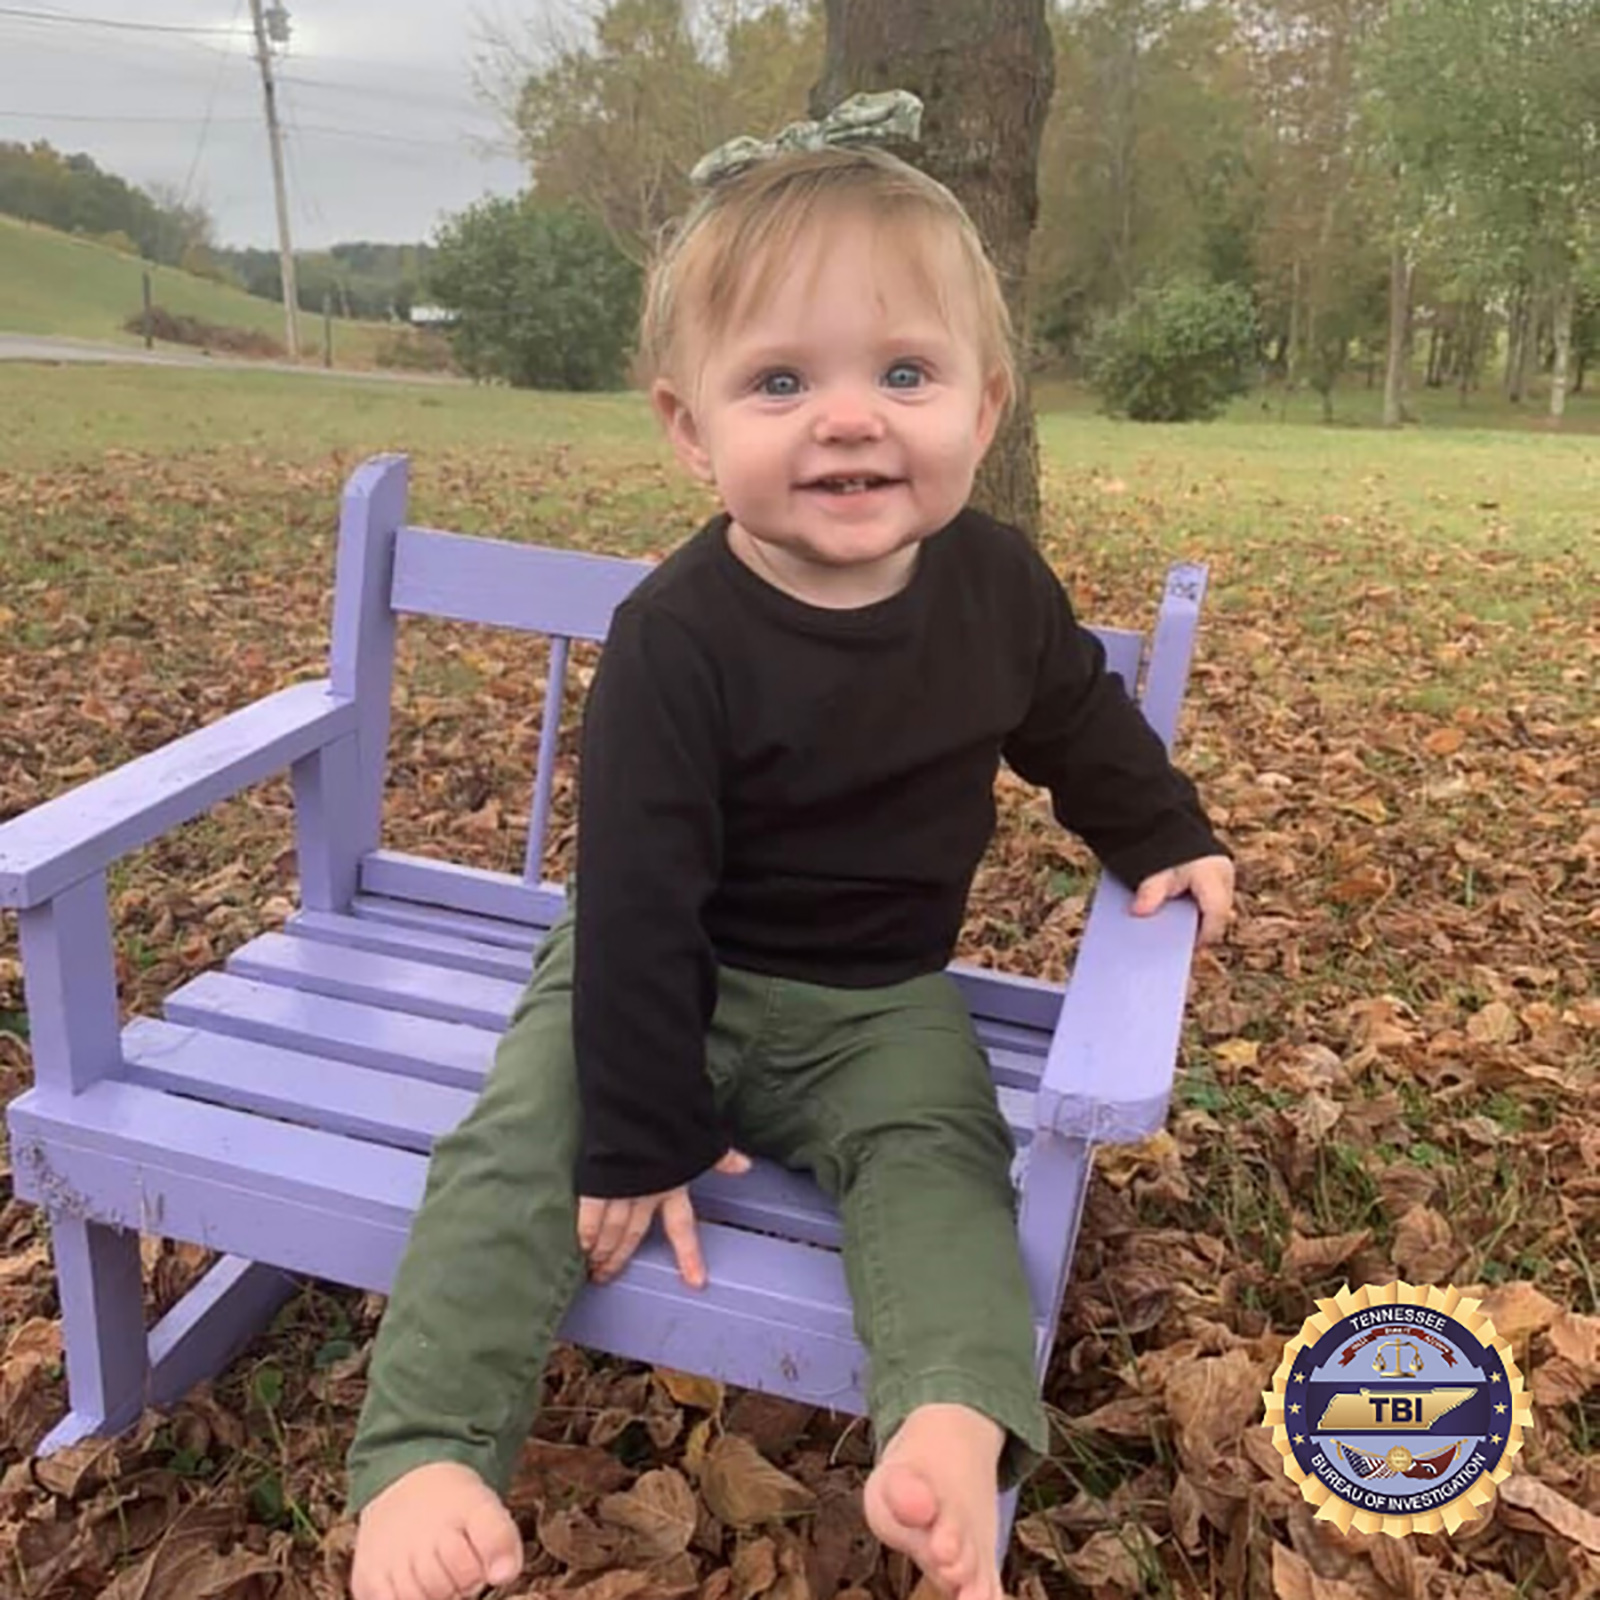 A 15-month-old was reported missing this week — two months after she was last seen